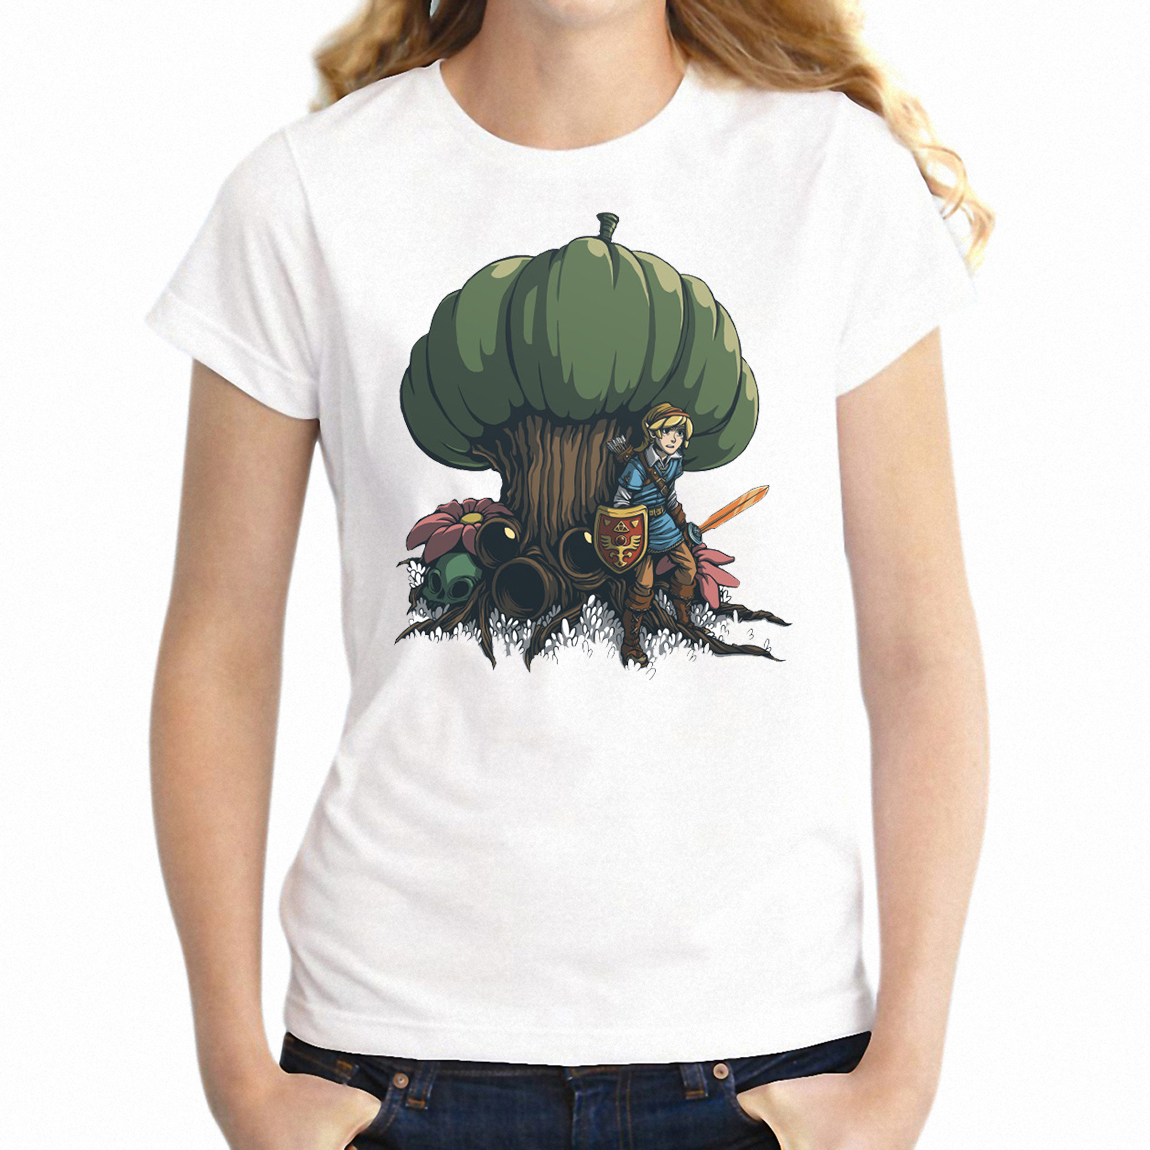 US $7 59 24% OFF|Women's T Shirt Hetsu and Korok Forest Link Legend of  Zelda Gamer Girl's Tee-in T-Shirts from Women's Clothing on Aliexpress com  |